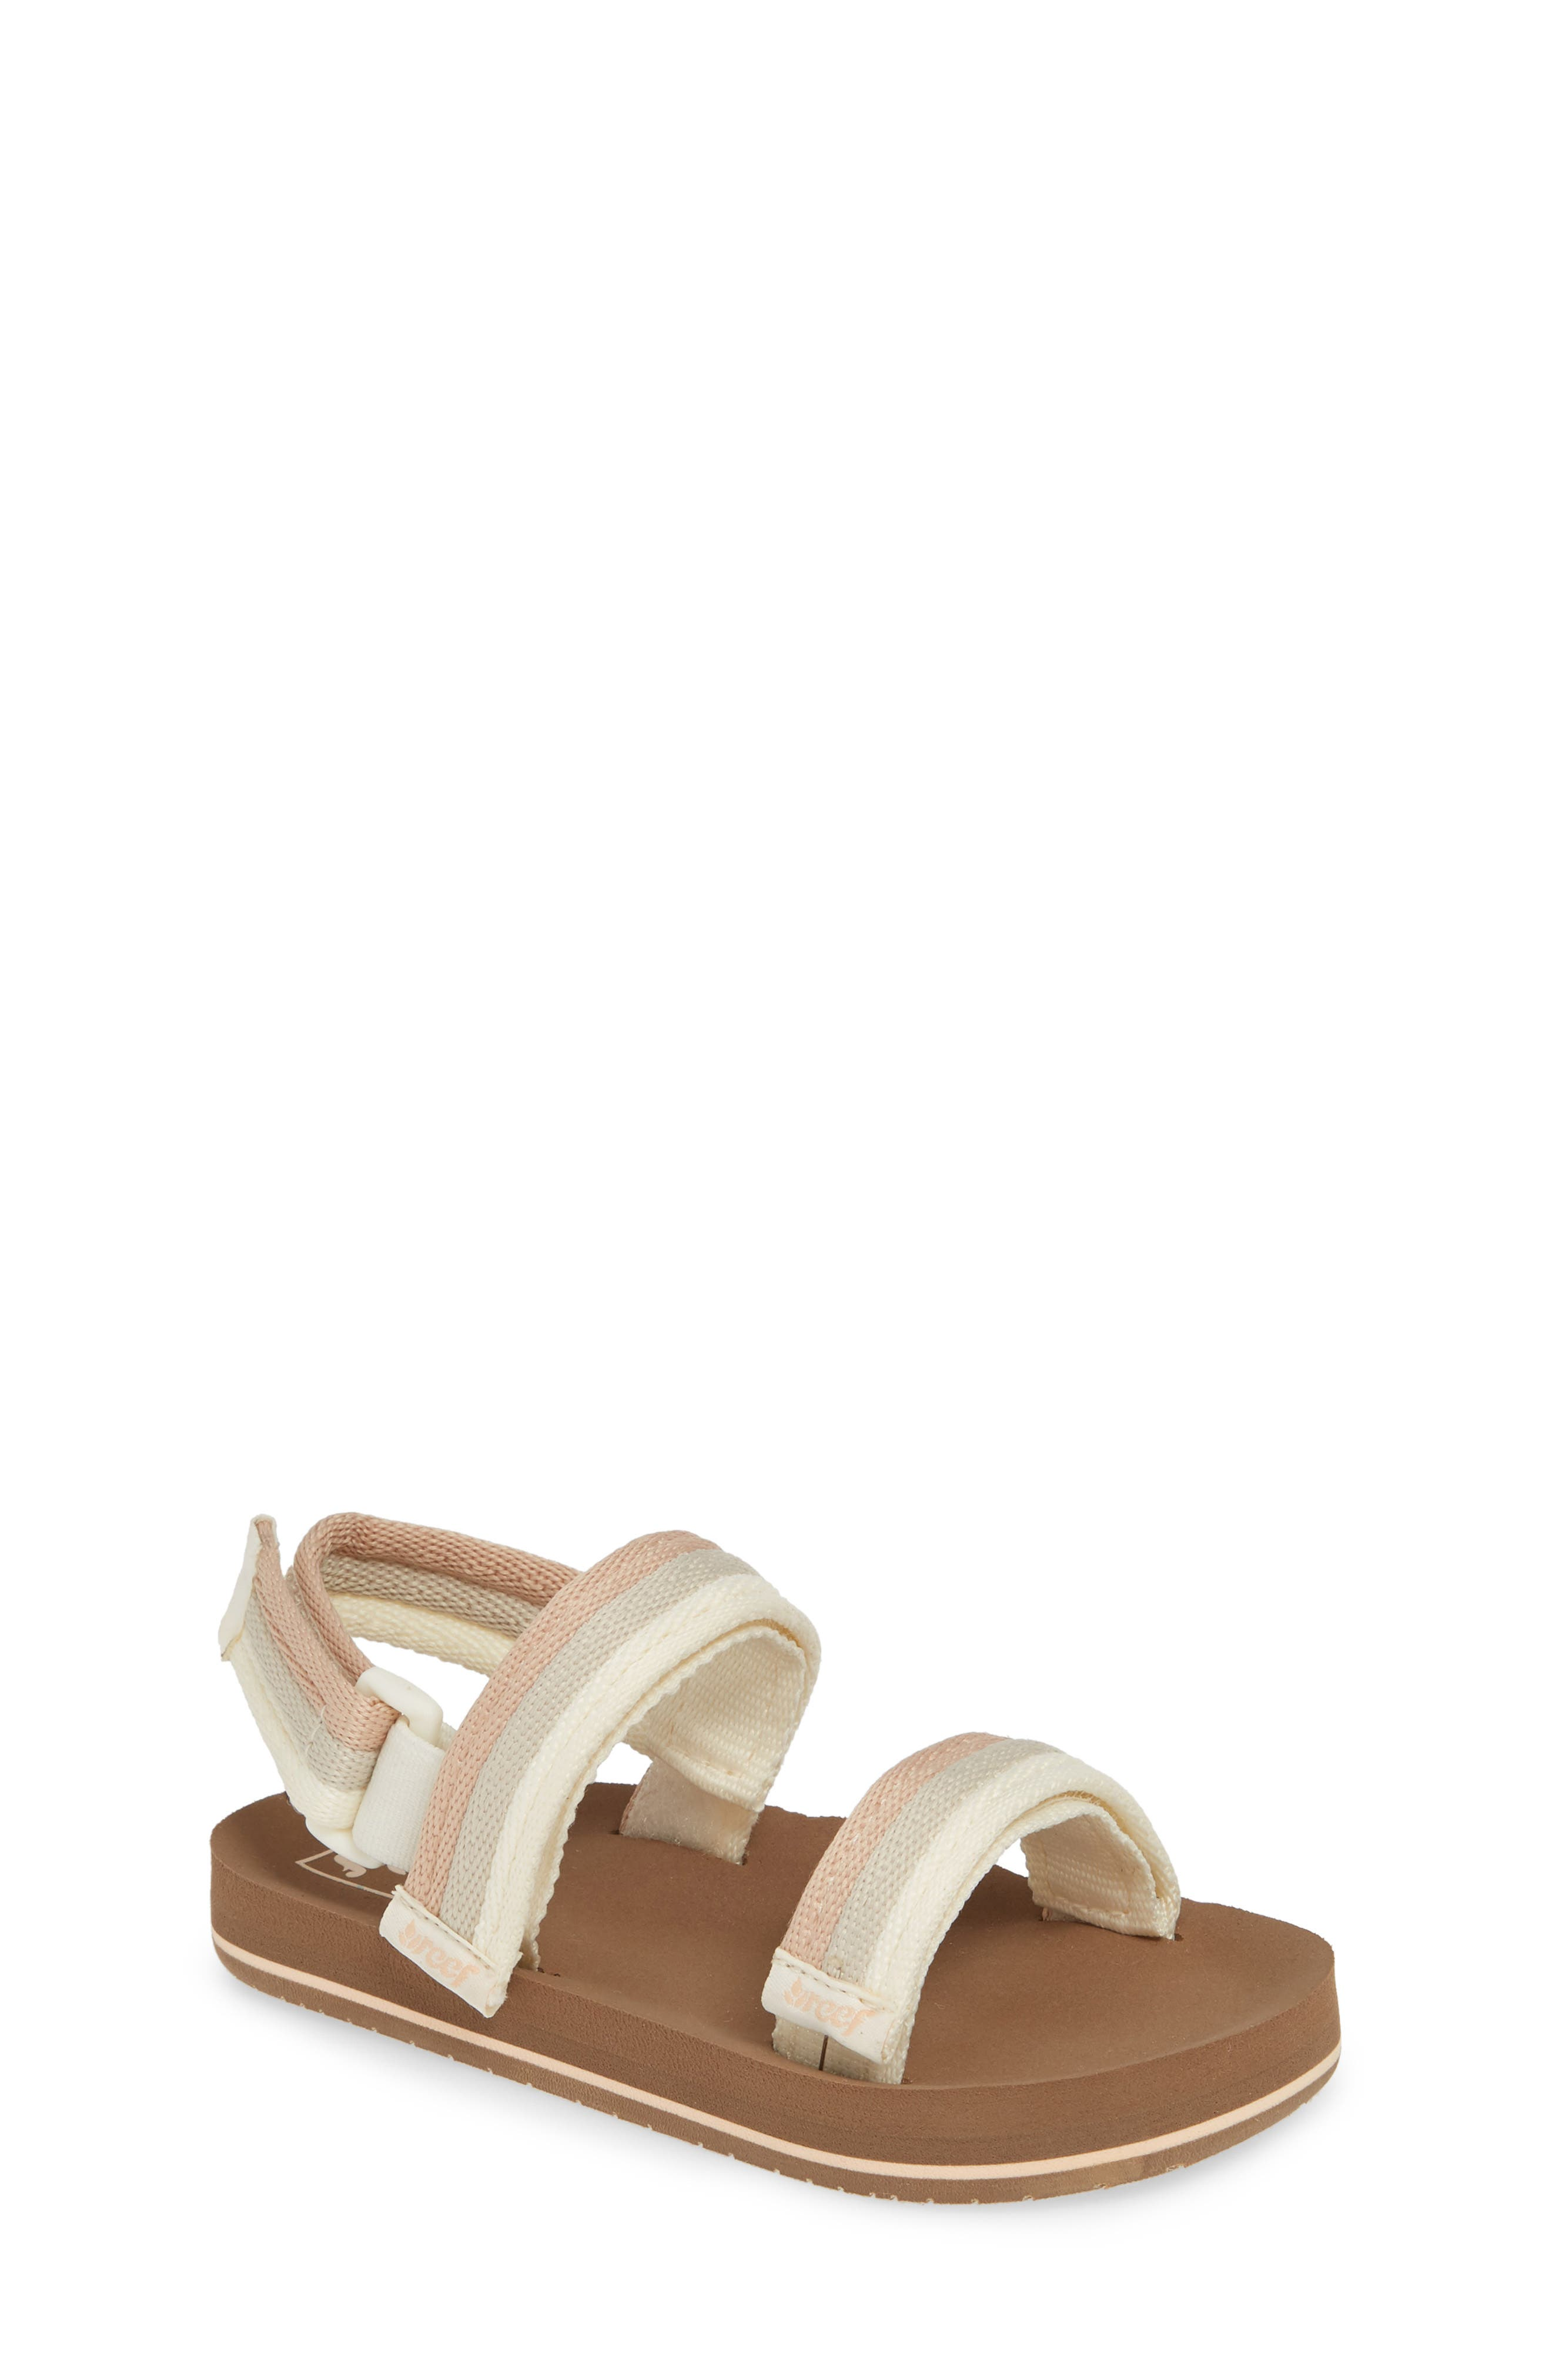 REEF, Little Ahi Convertible Sandal, Main thumbnail 1, color, SANDY TOES